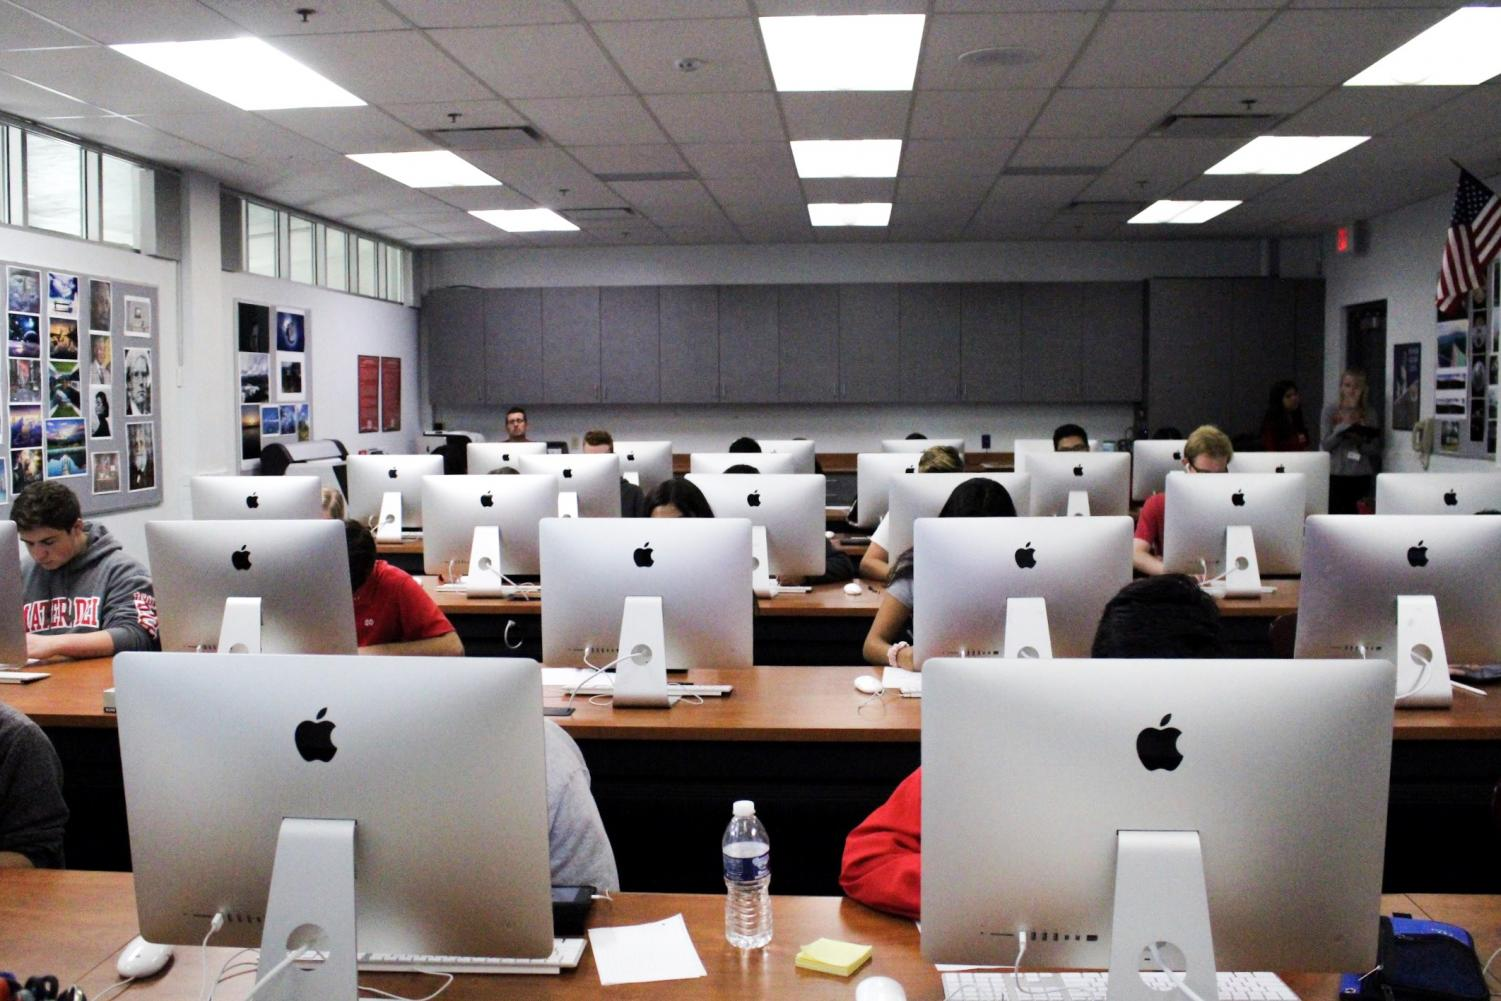 DIGITAL LEARNING: Students in Kyle Roberts' block 4 Contemporary Media class in room 103 work on iMacs on Sept. 7.